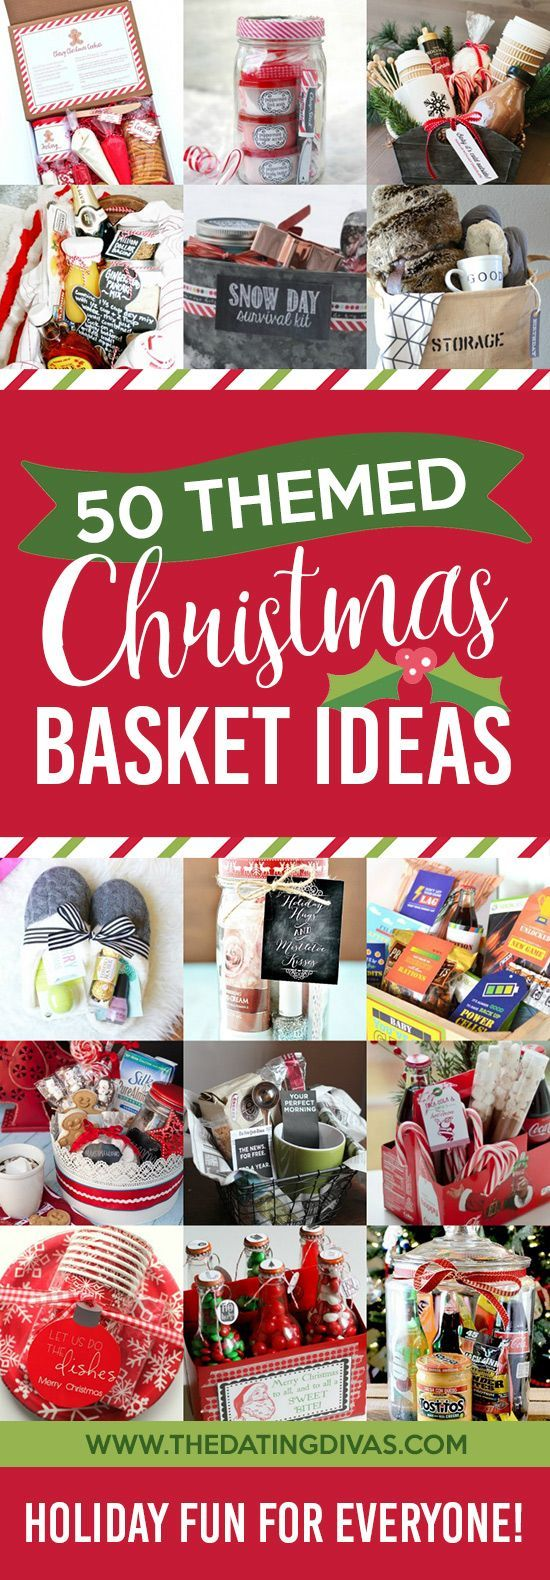 Diy Gifts Ideas So Many Cute Christmas Basket Ideas Love How